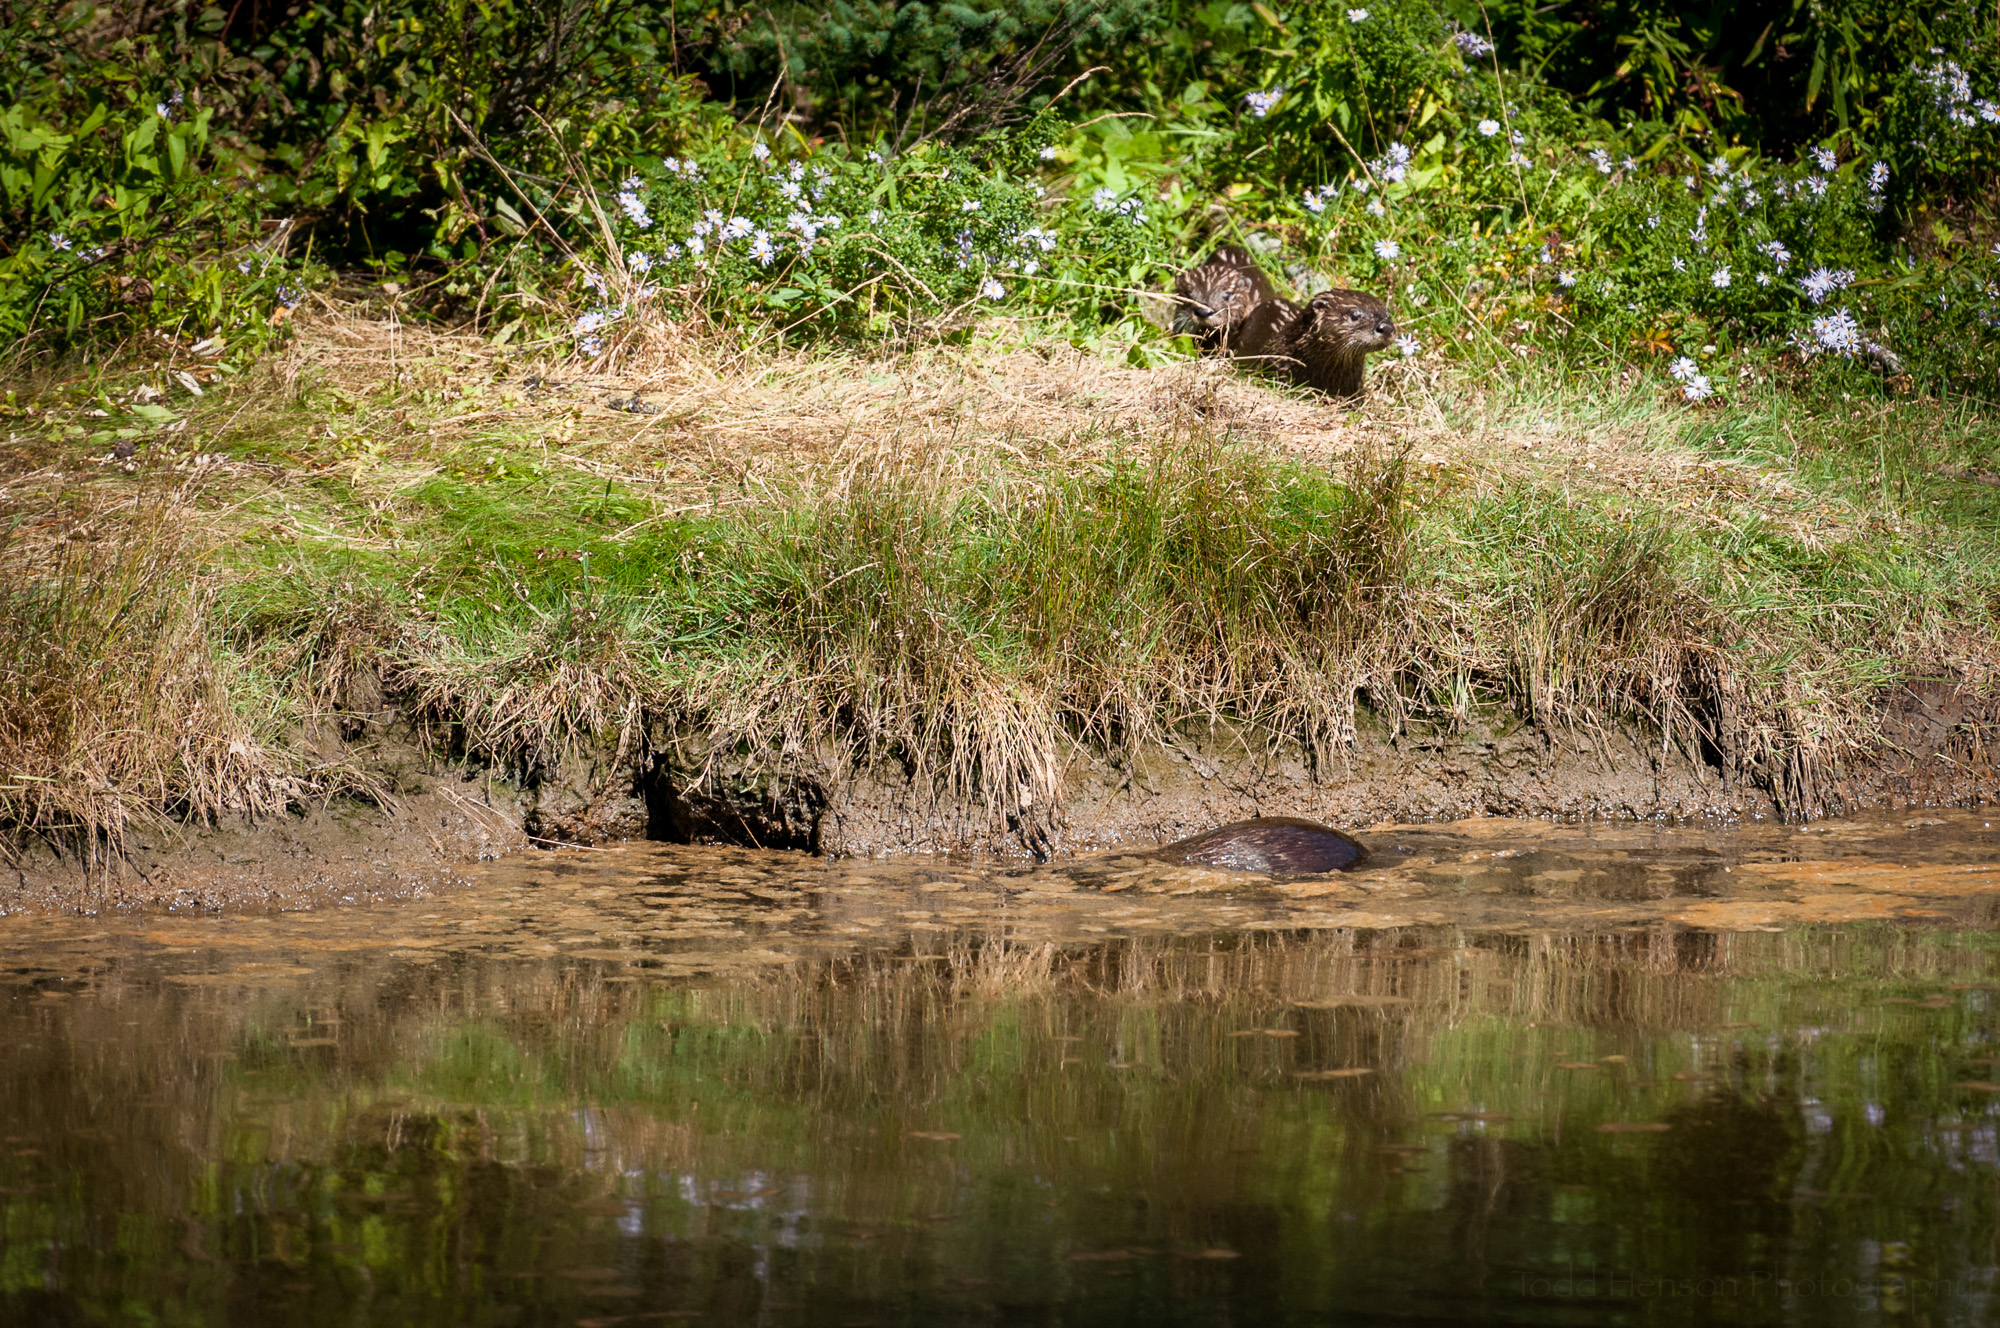 Three river otter have gone through the darker opening at water level and are on shore. A fourth is still in the water.